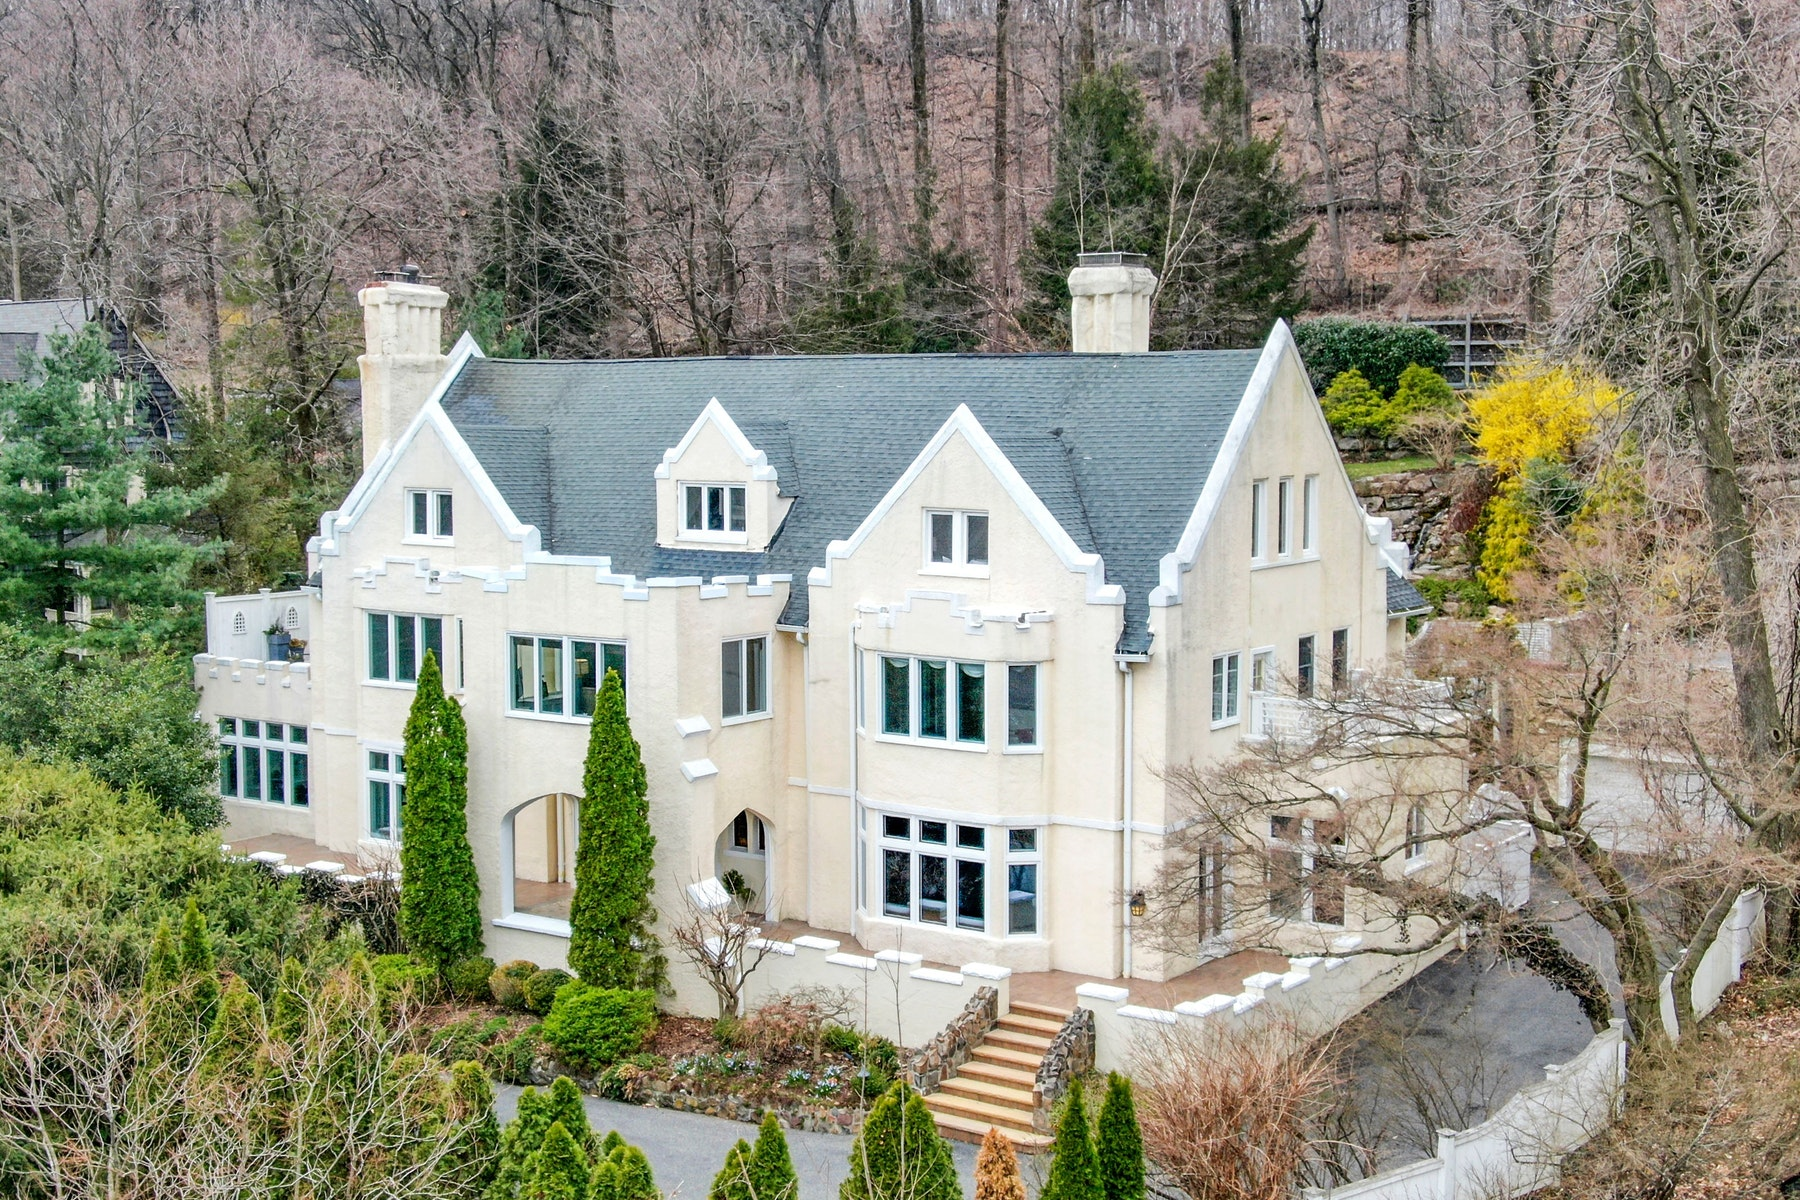 Maison unifamiliale pour l Vente à Resort Living with Skyline Views 60 Lloyd Road, Montclair, New Jersey 07042 États-Unis